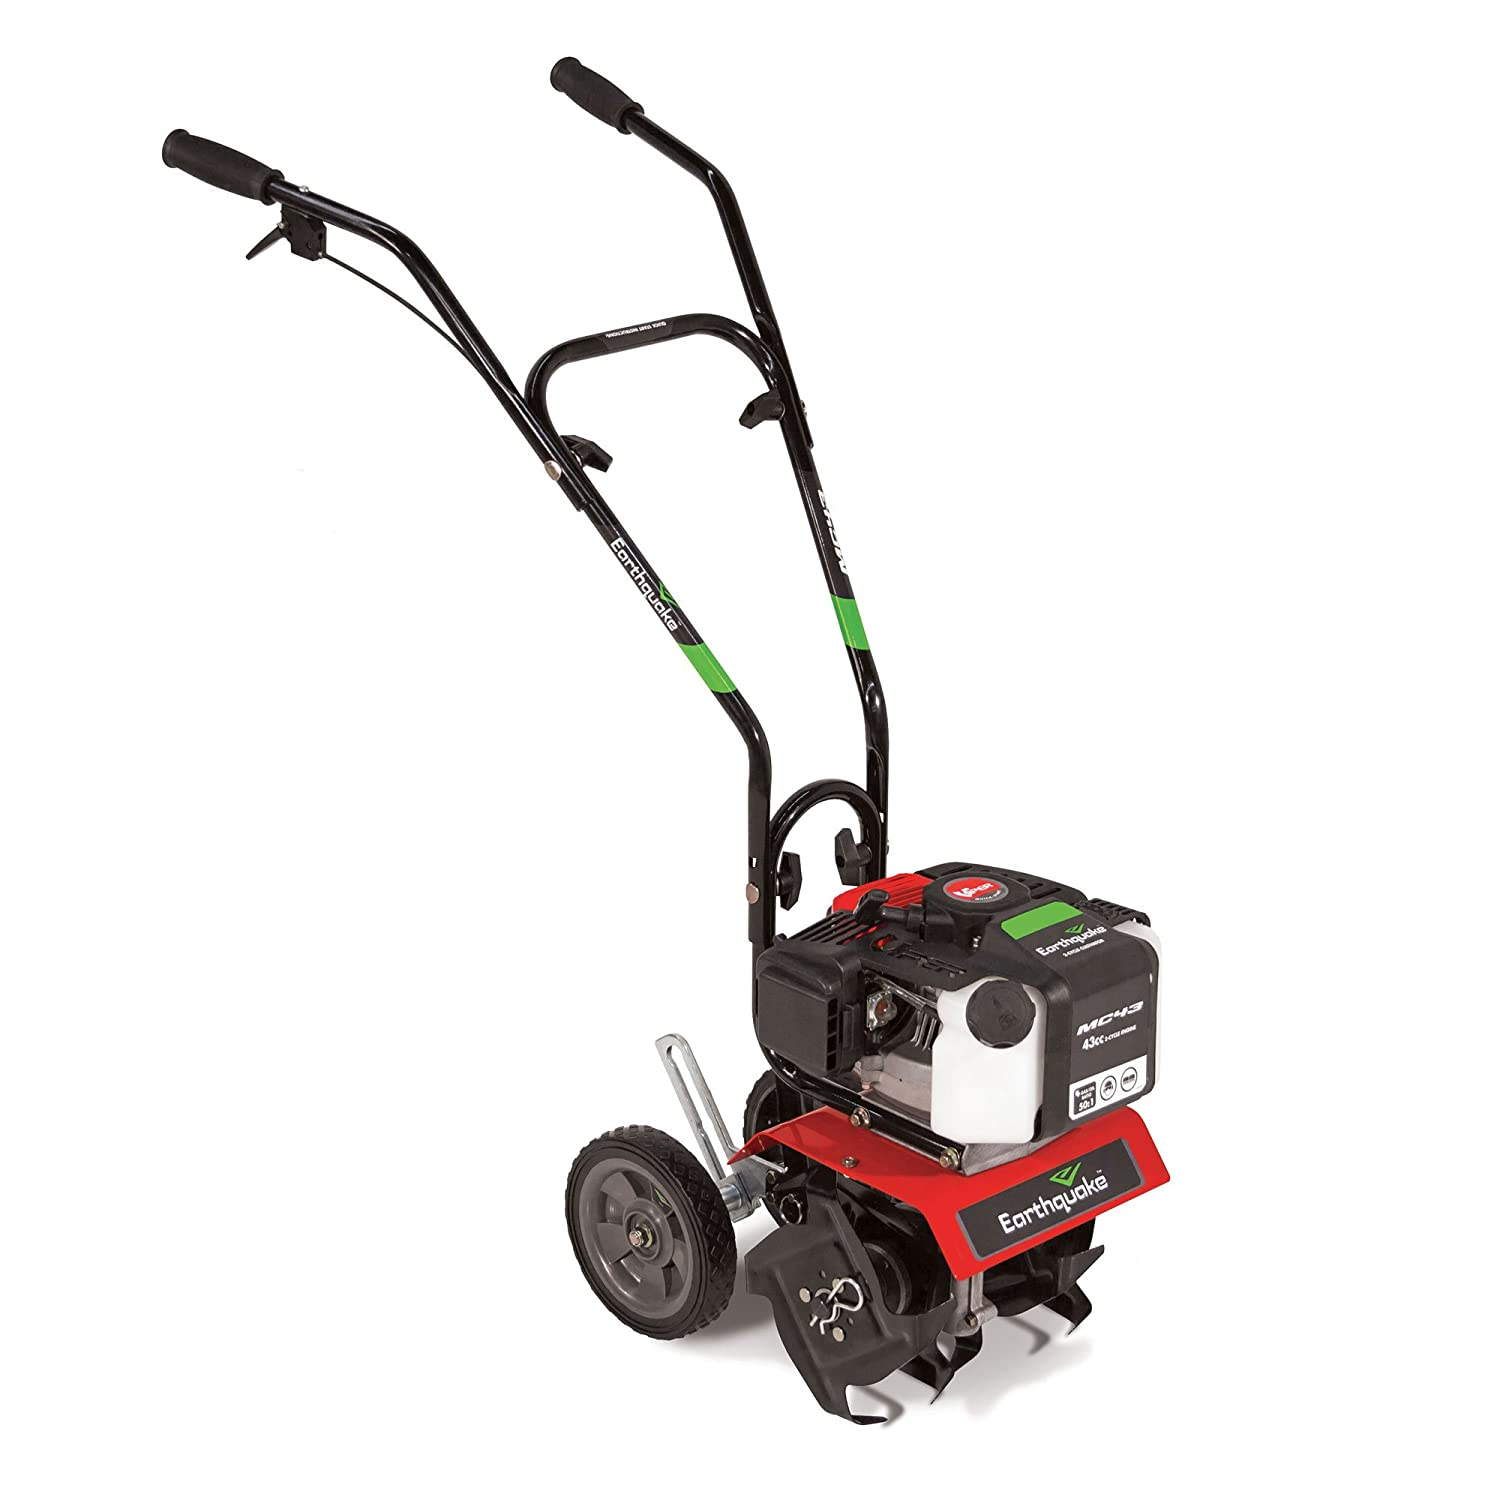 This garden tiller is easy to move around. It is gas powered which is suitable for garden estates.